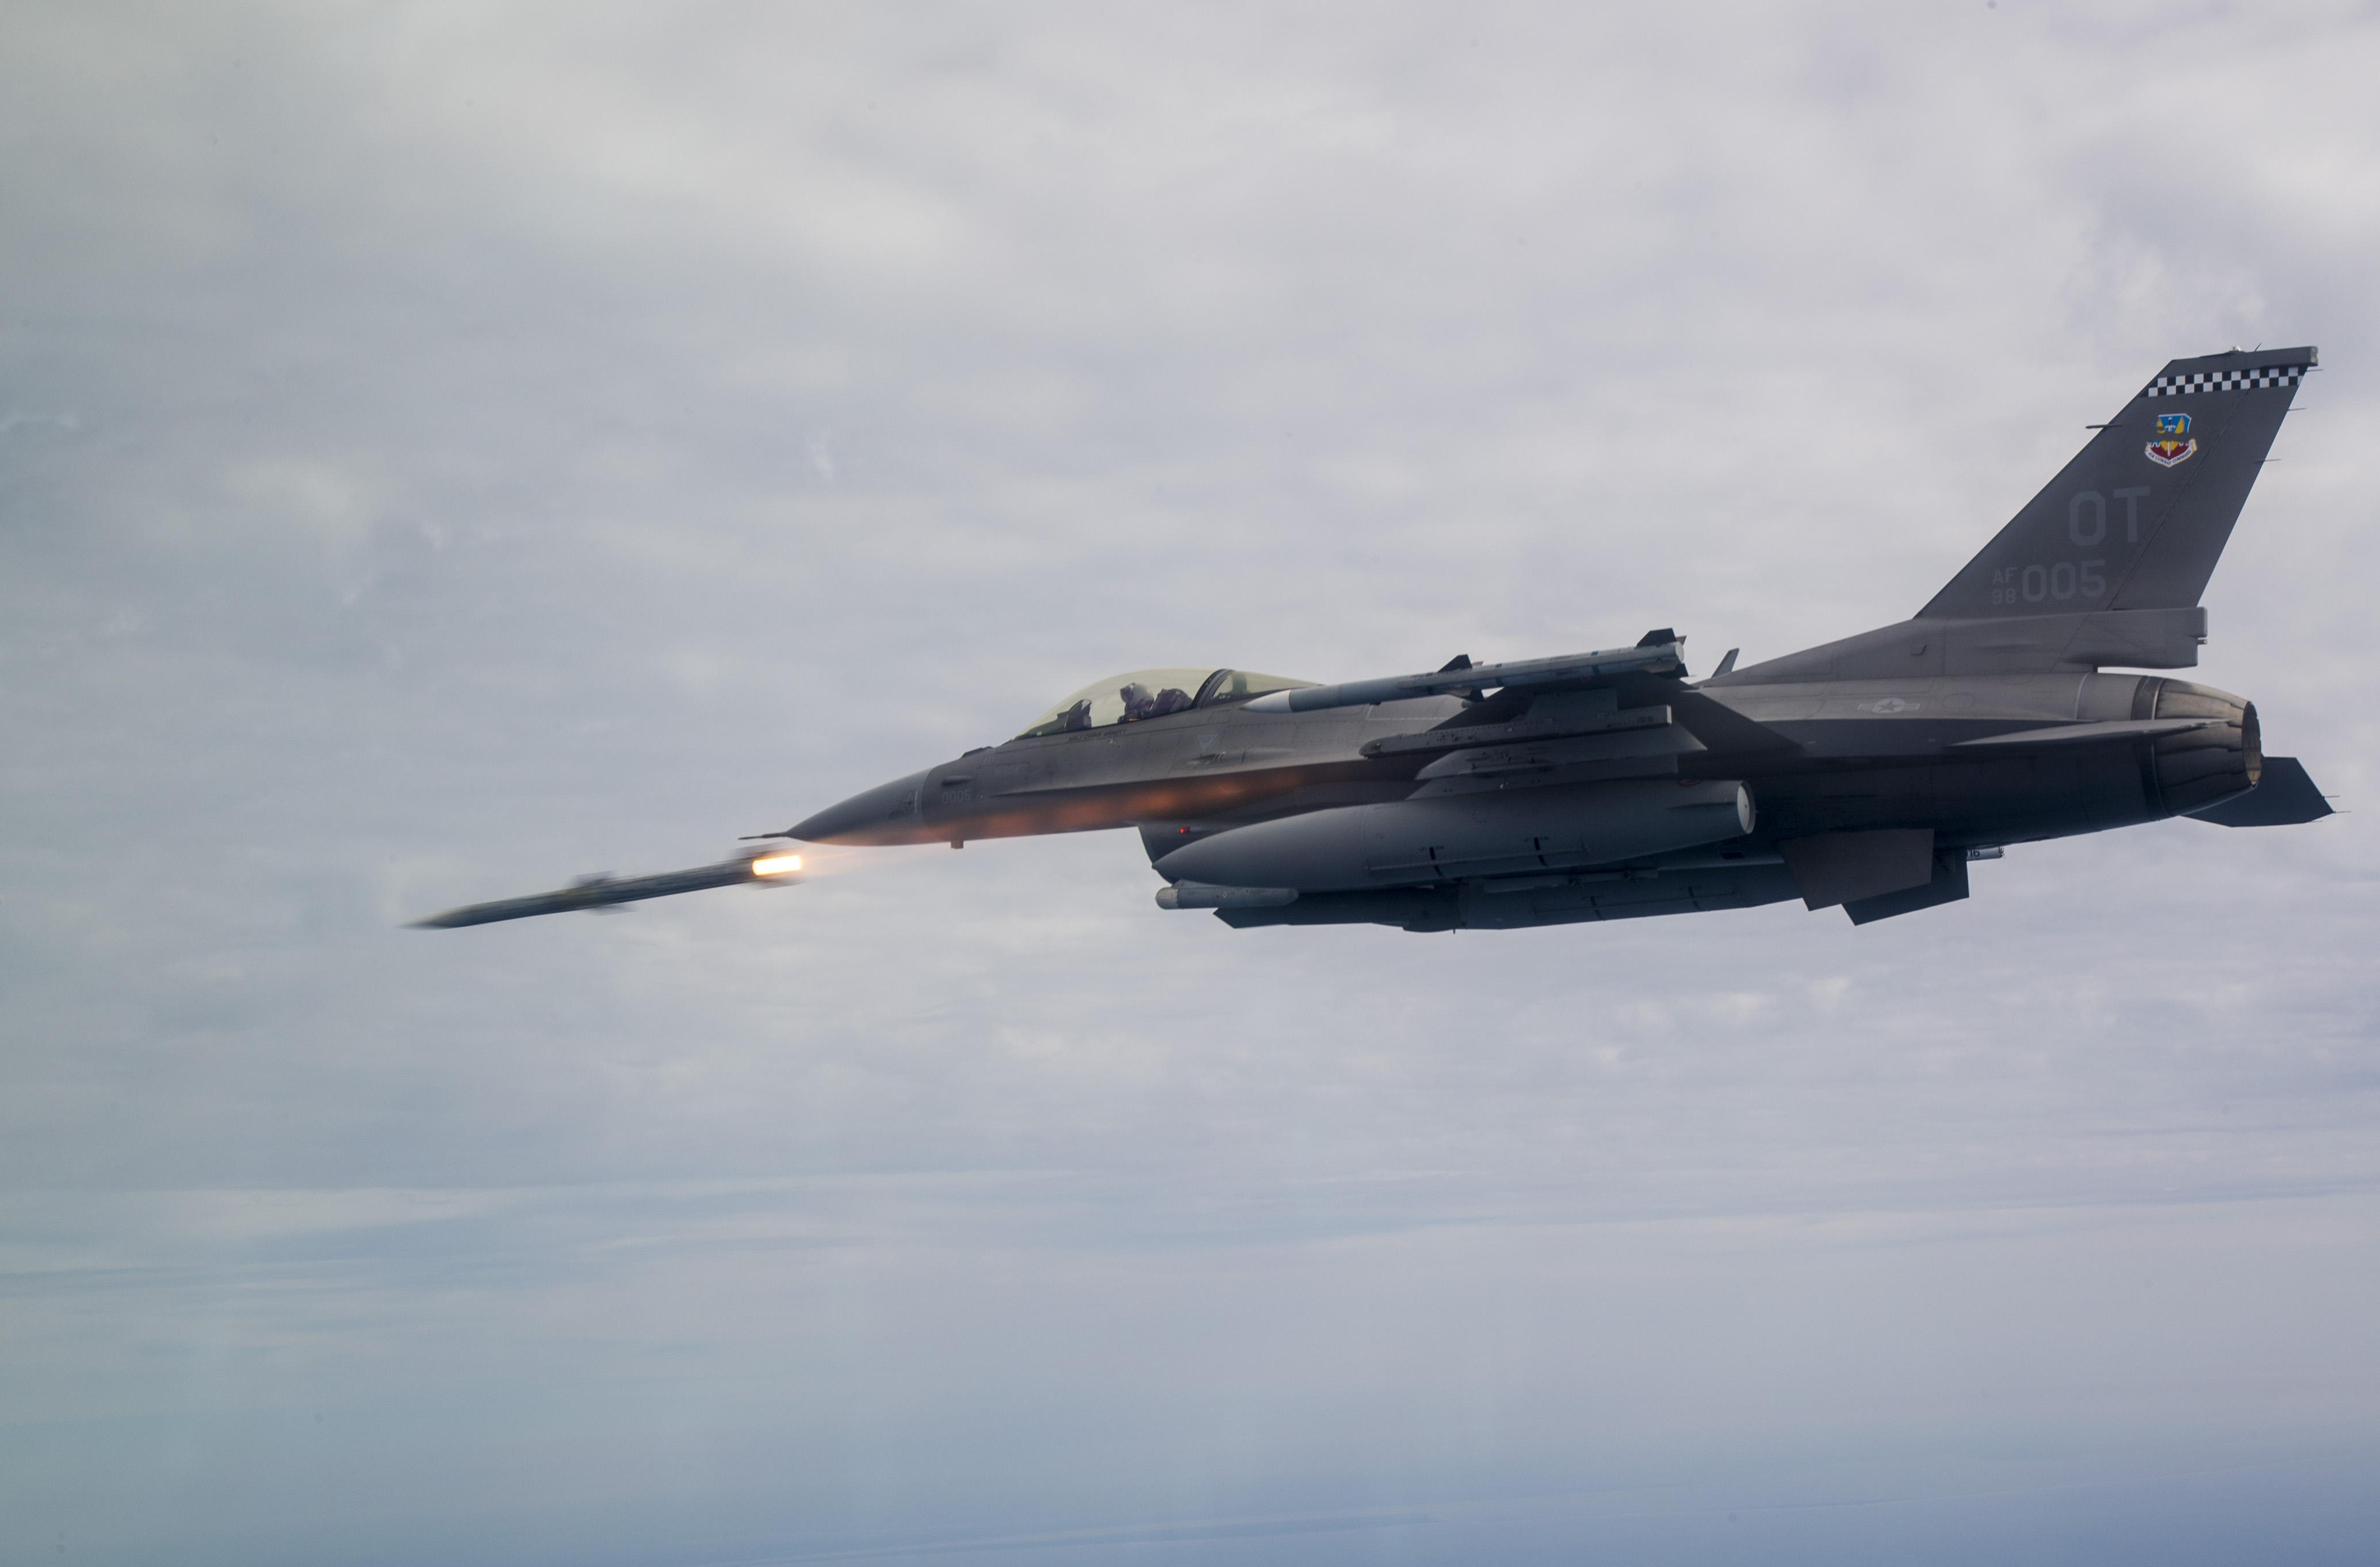 Operational Flight Program (OFP) Software Makes F-16 More Capable